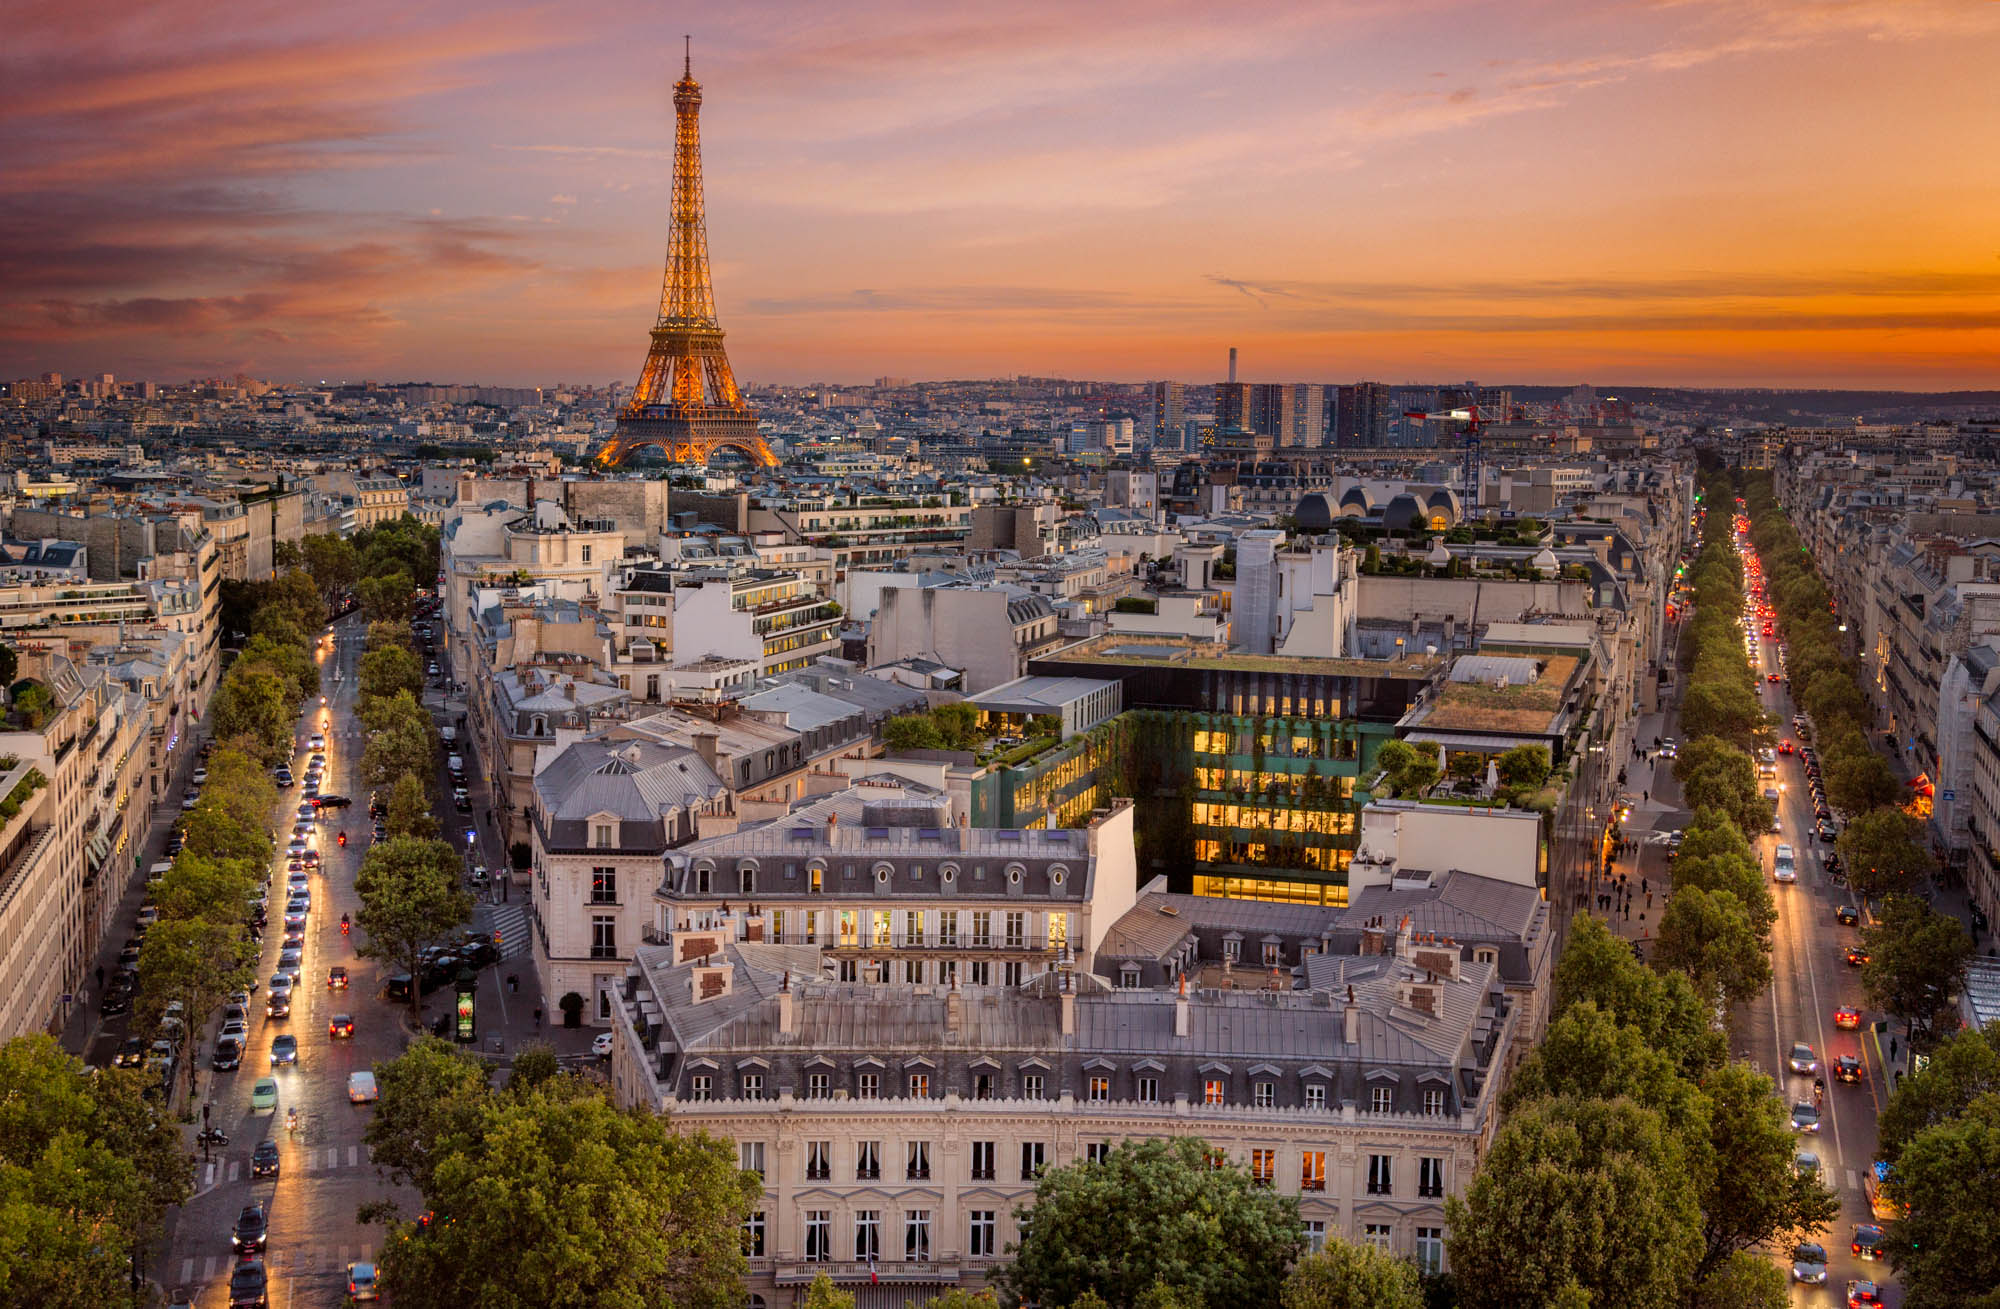 long exposure photography of the Eiffel Tower in Paris France at sunset viewed from rooftops